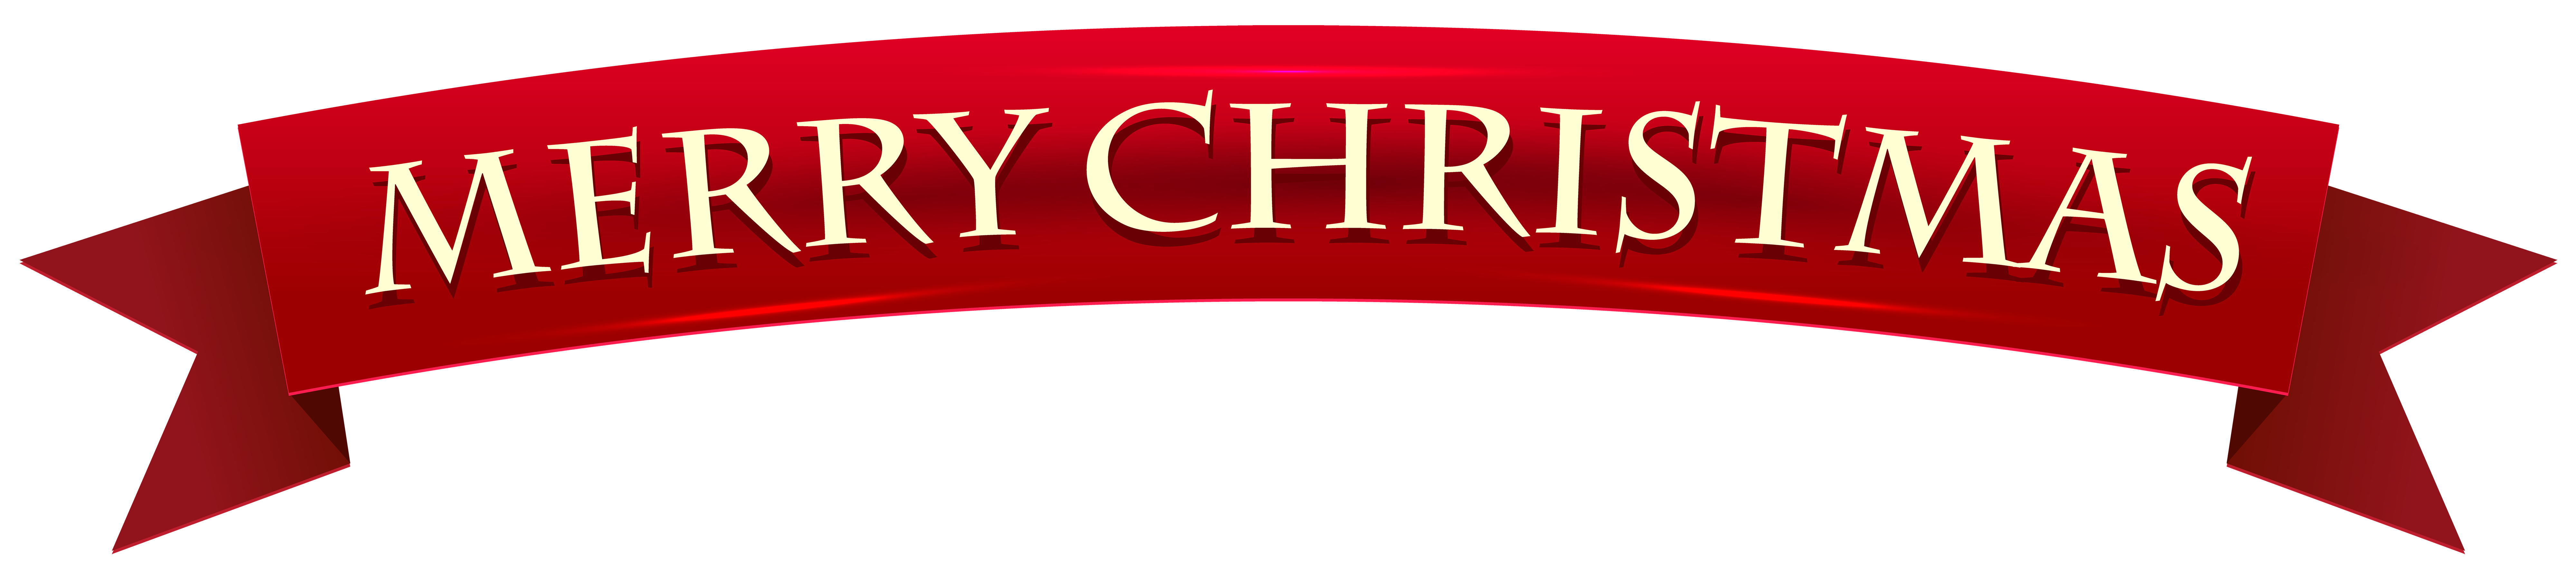 hight resolution of banner merry christmas transparent clip art image